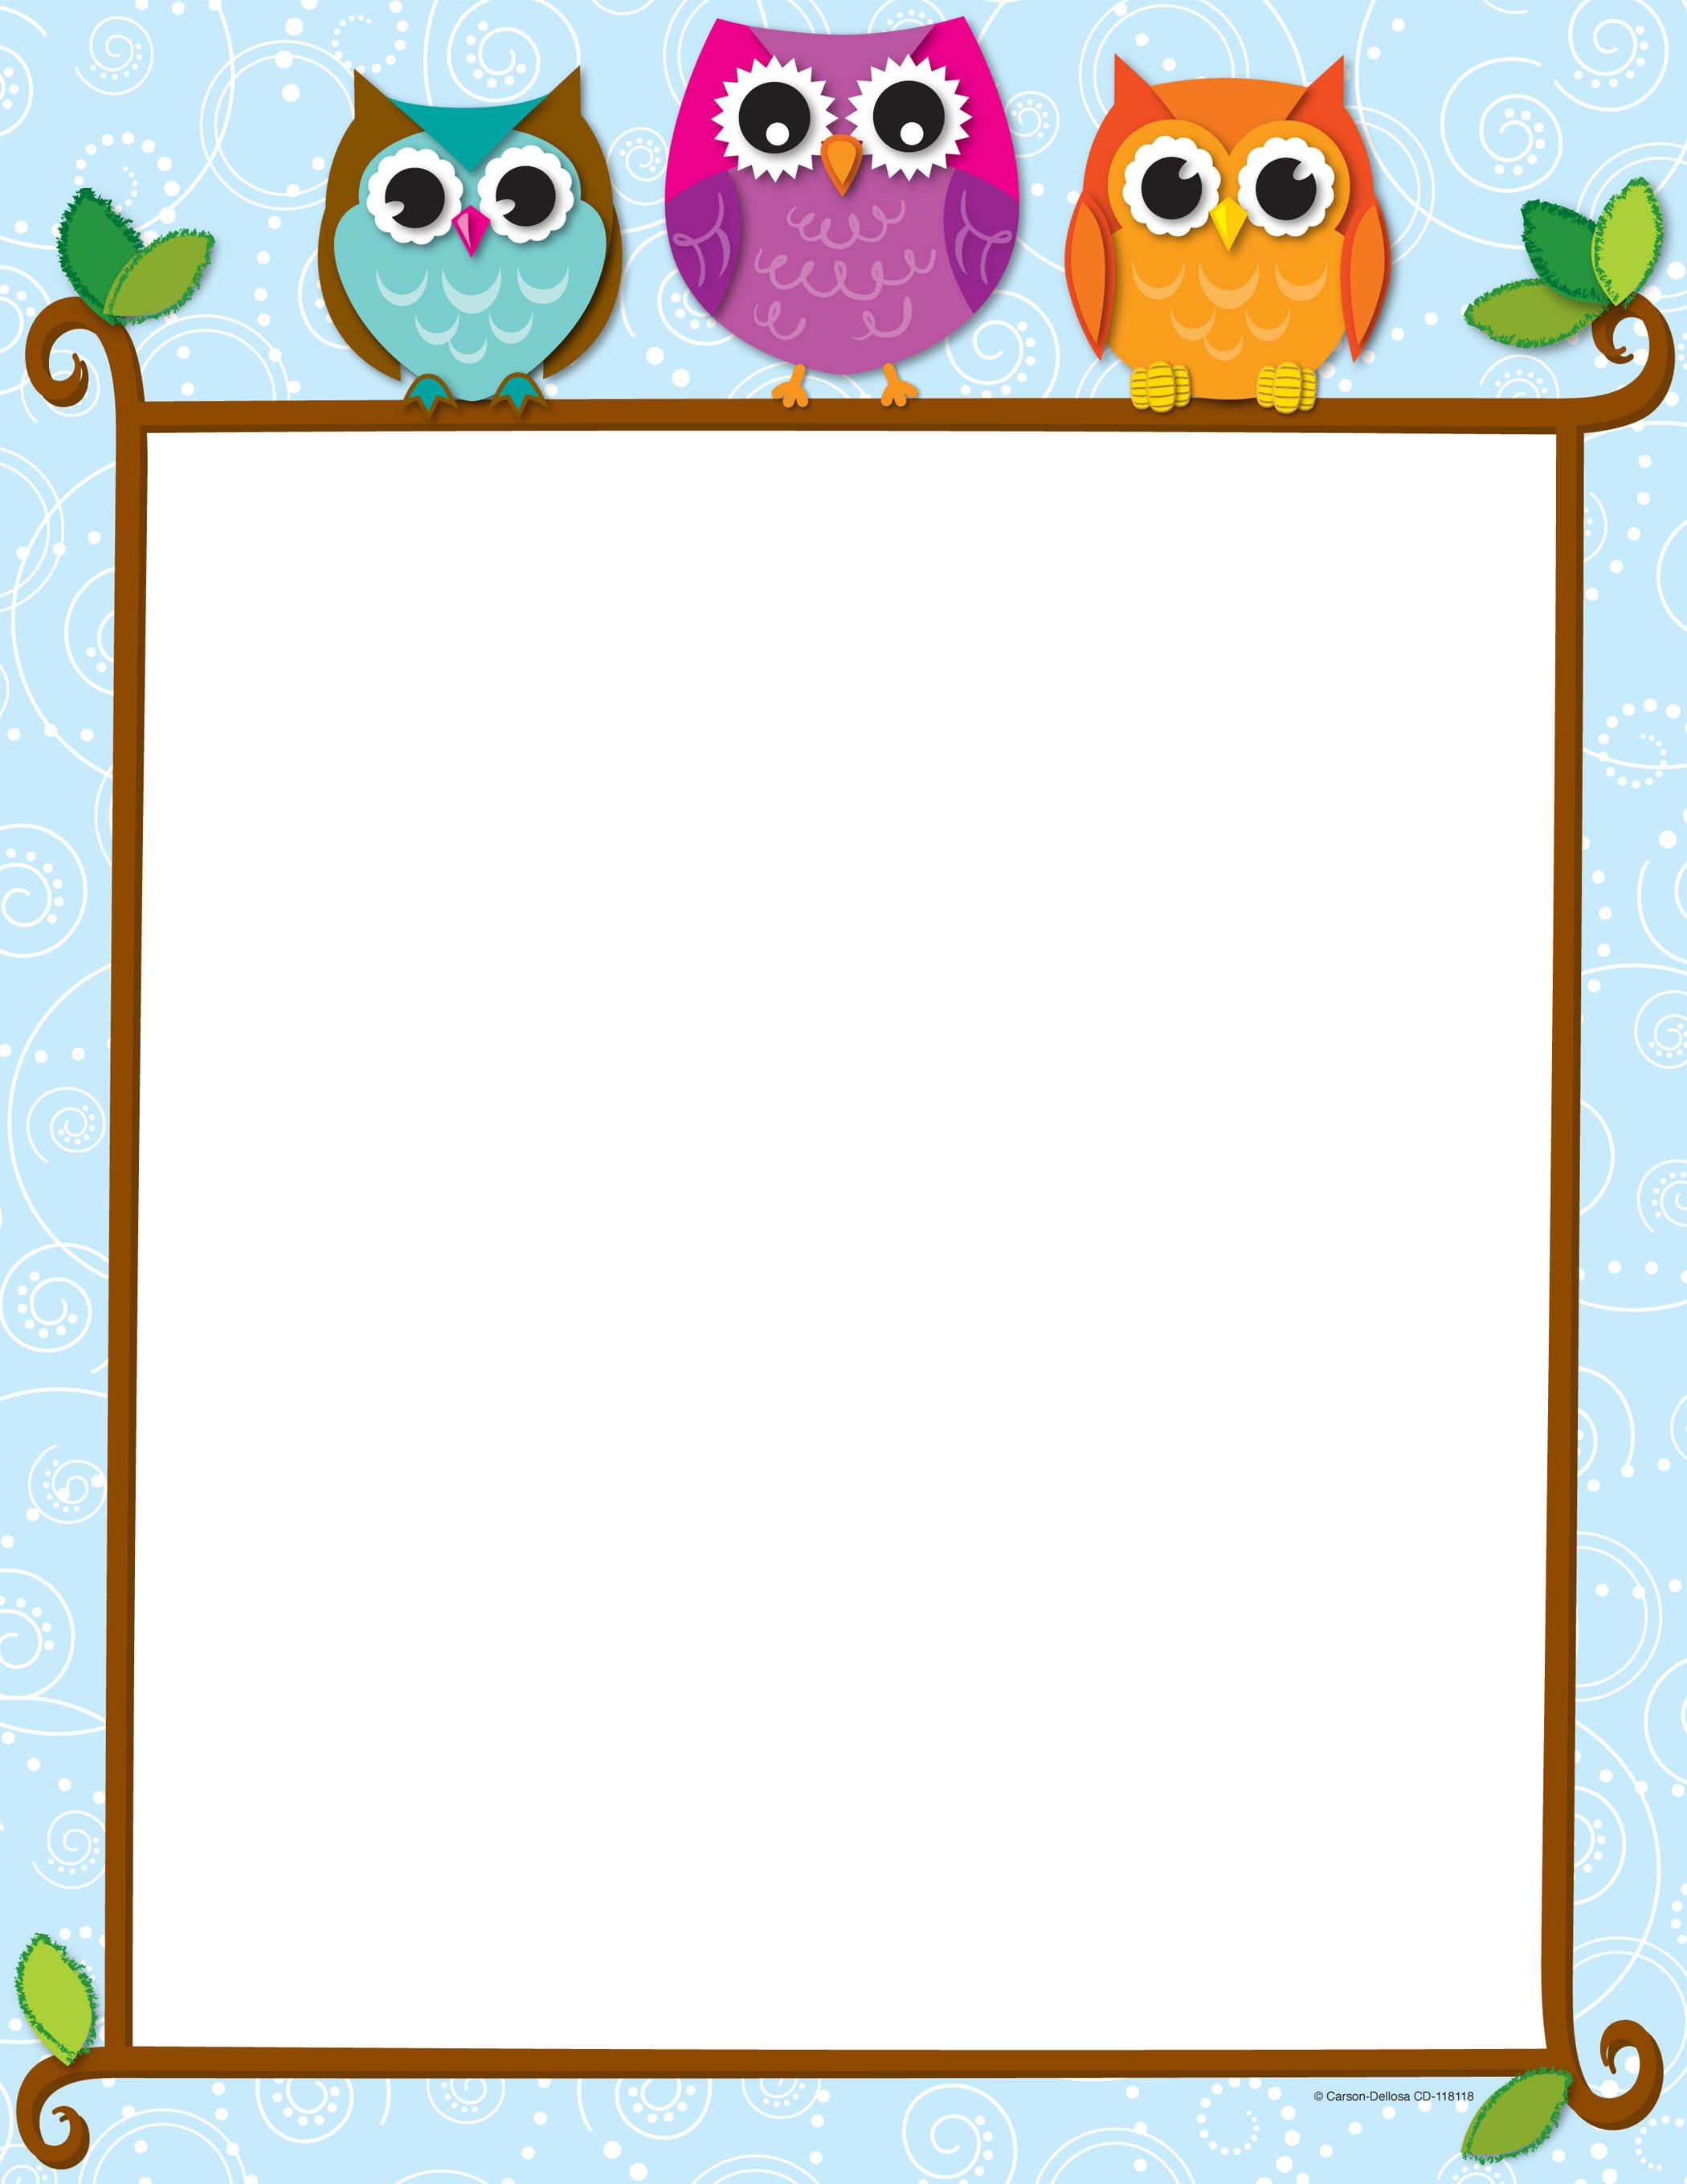 7 best images of owls printable borders and frames